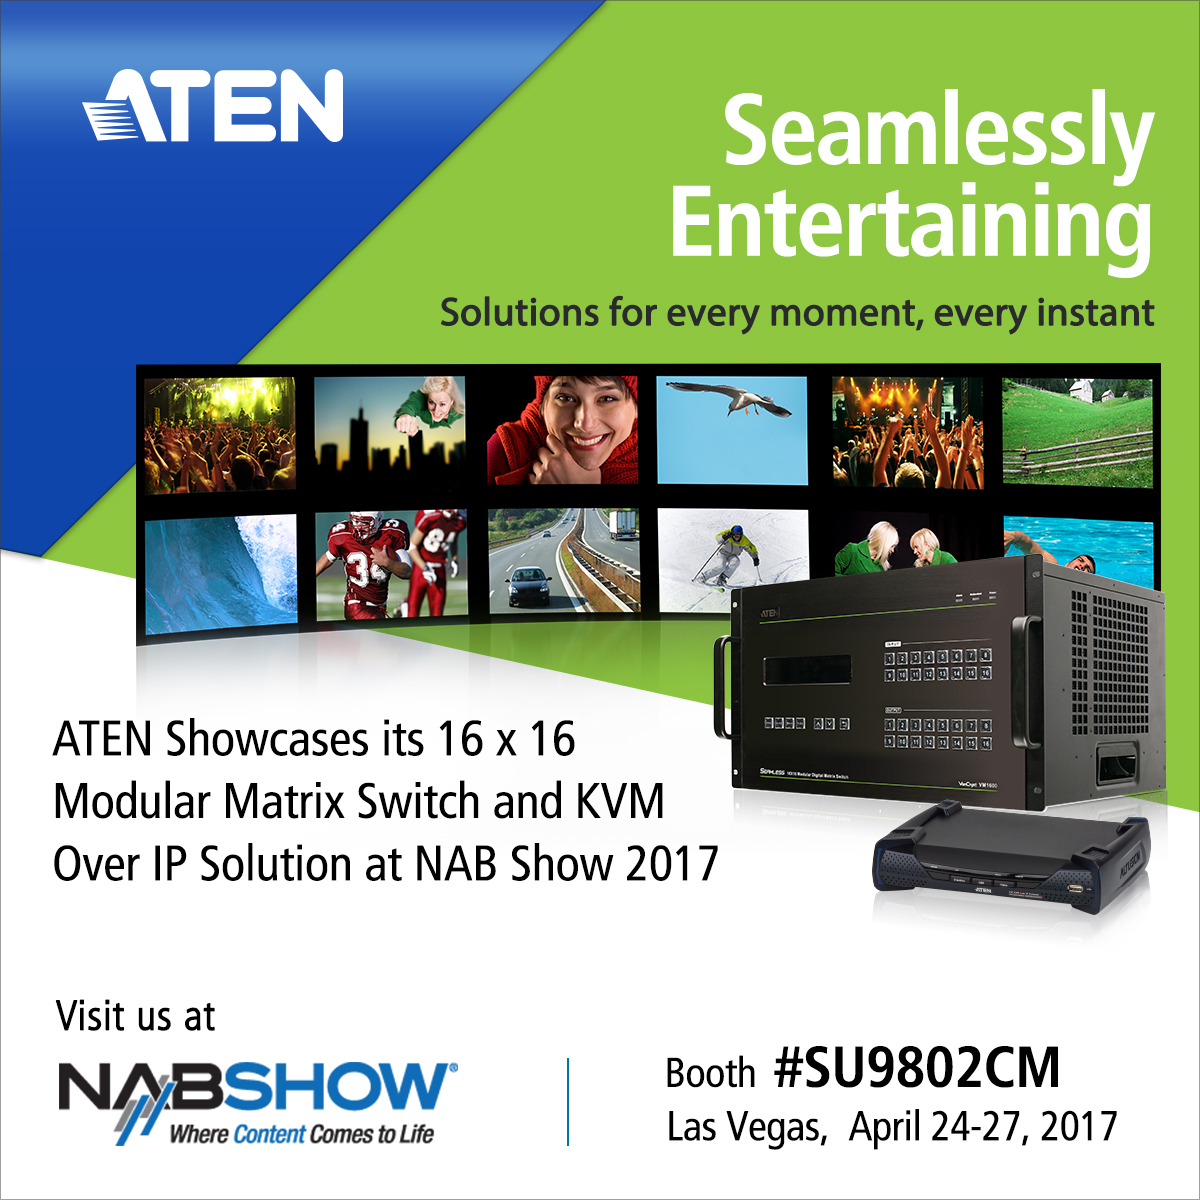 ATEN Showcases its 16 x 16 Modular Matrix Switch and KVM Over IP Solution at NAB Show 2017